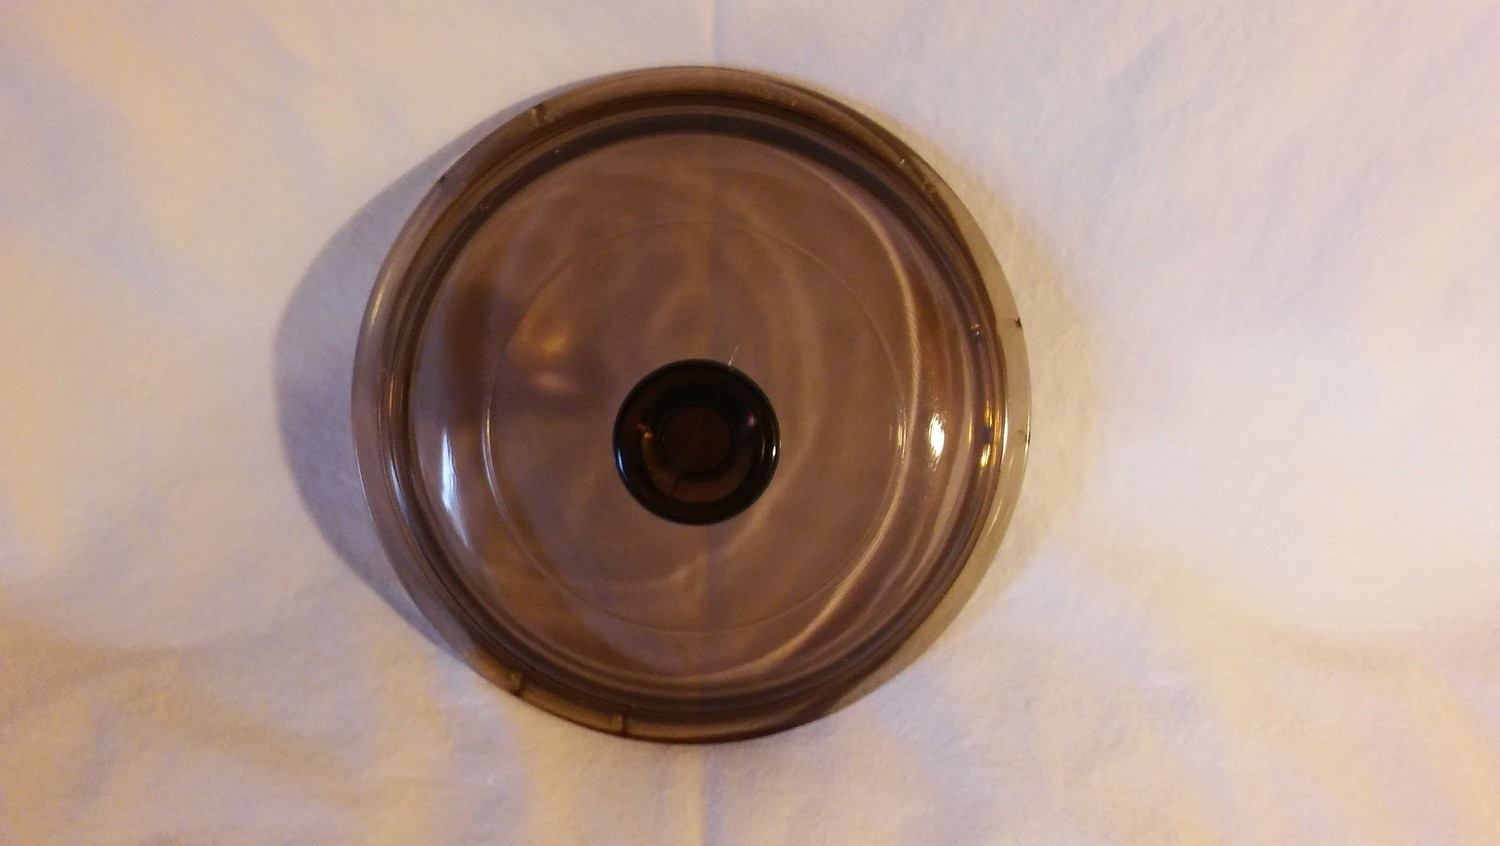 """Corning Ware Visions (Pyrex) 5 3/4""""Lid for 1 Quart Round Casserole, V-1-C, Amber"""